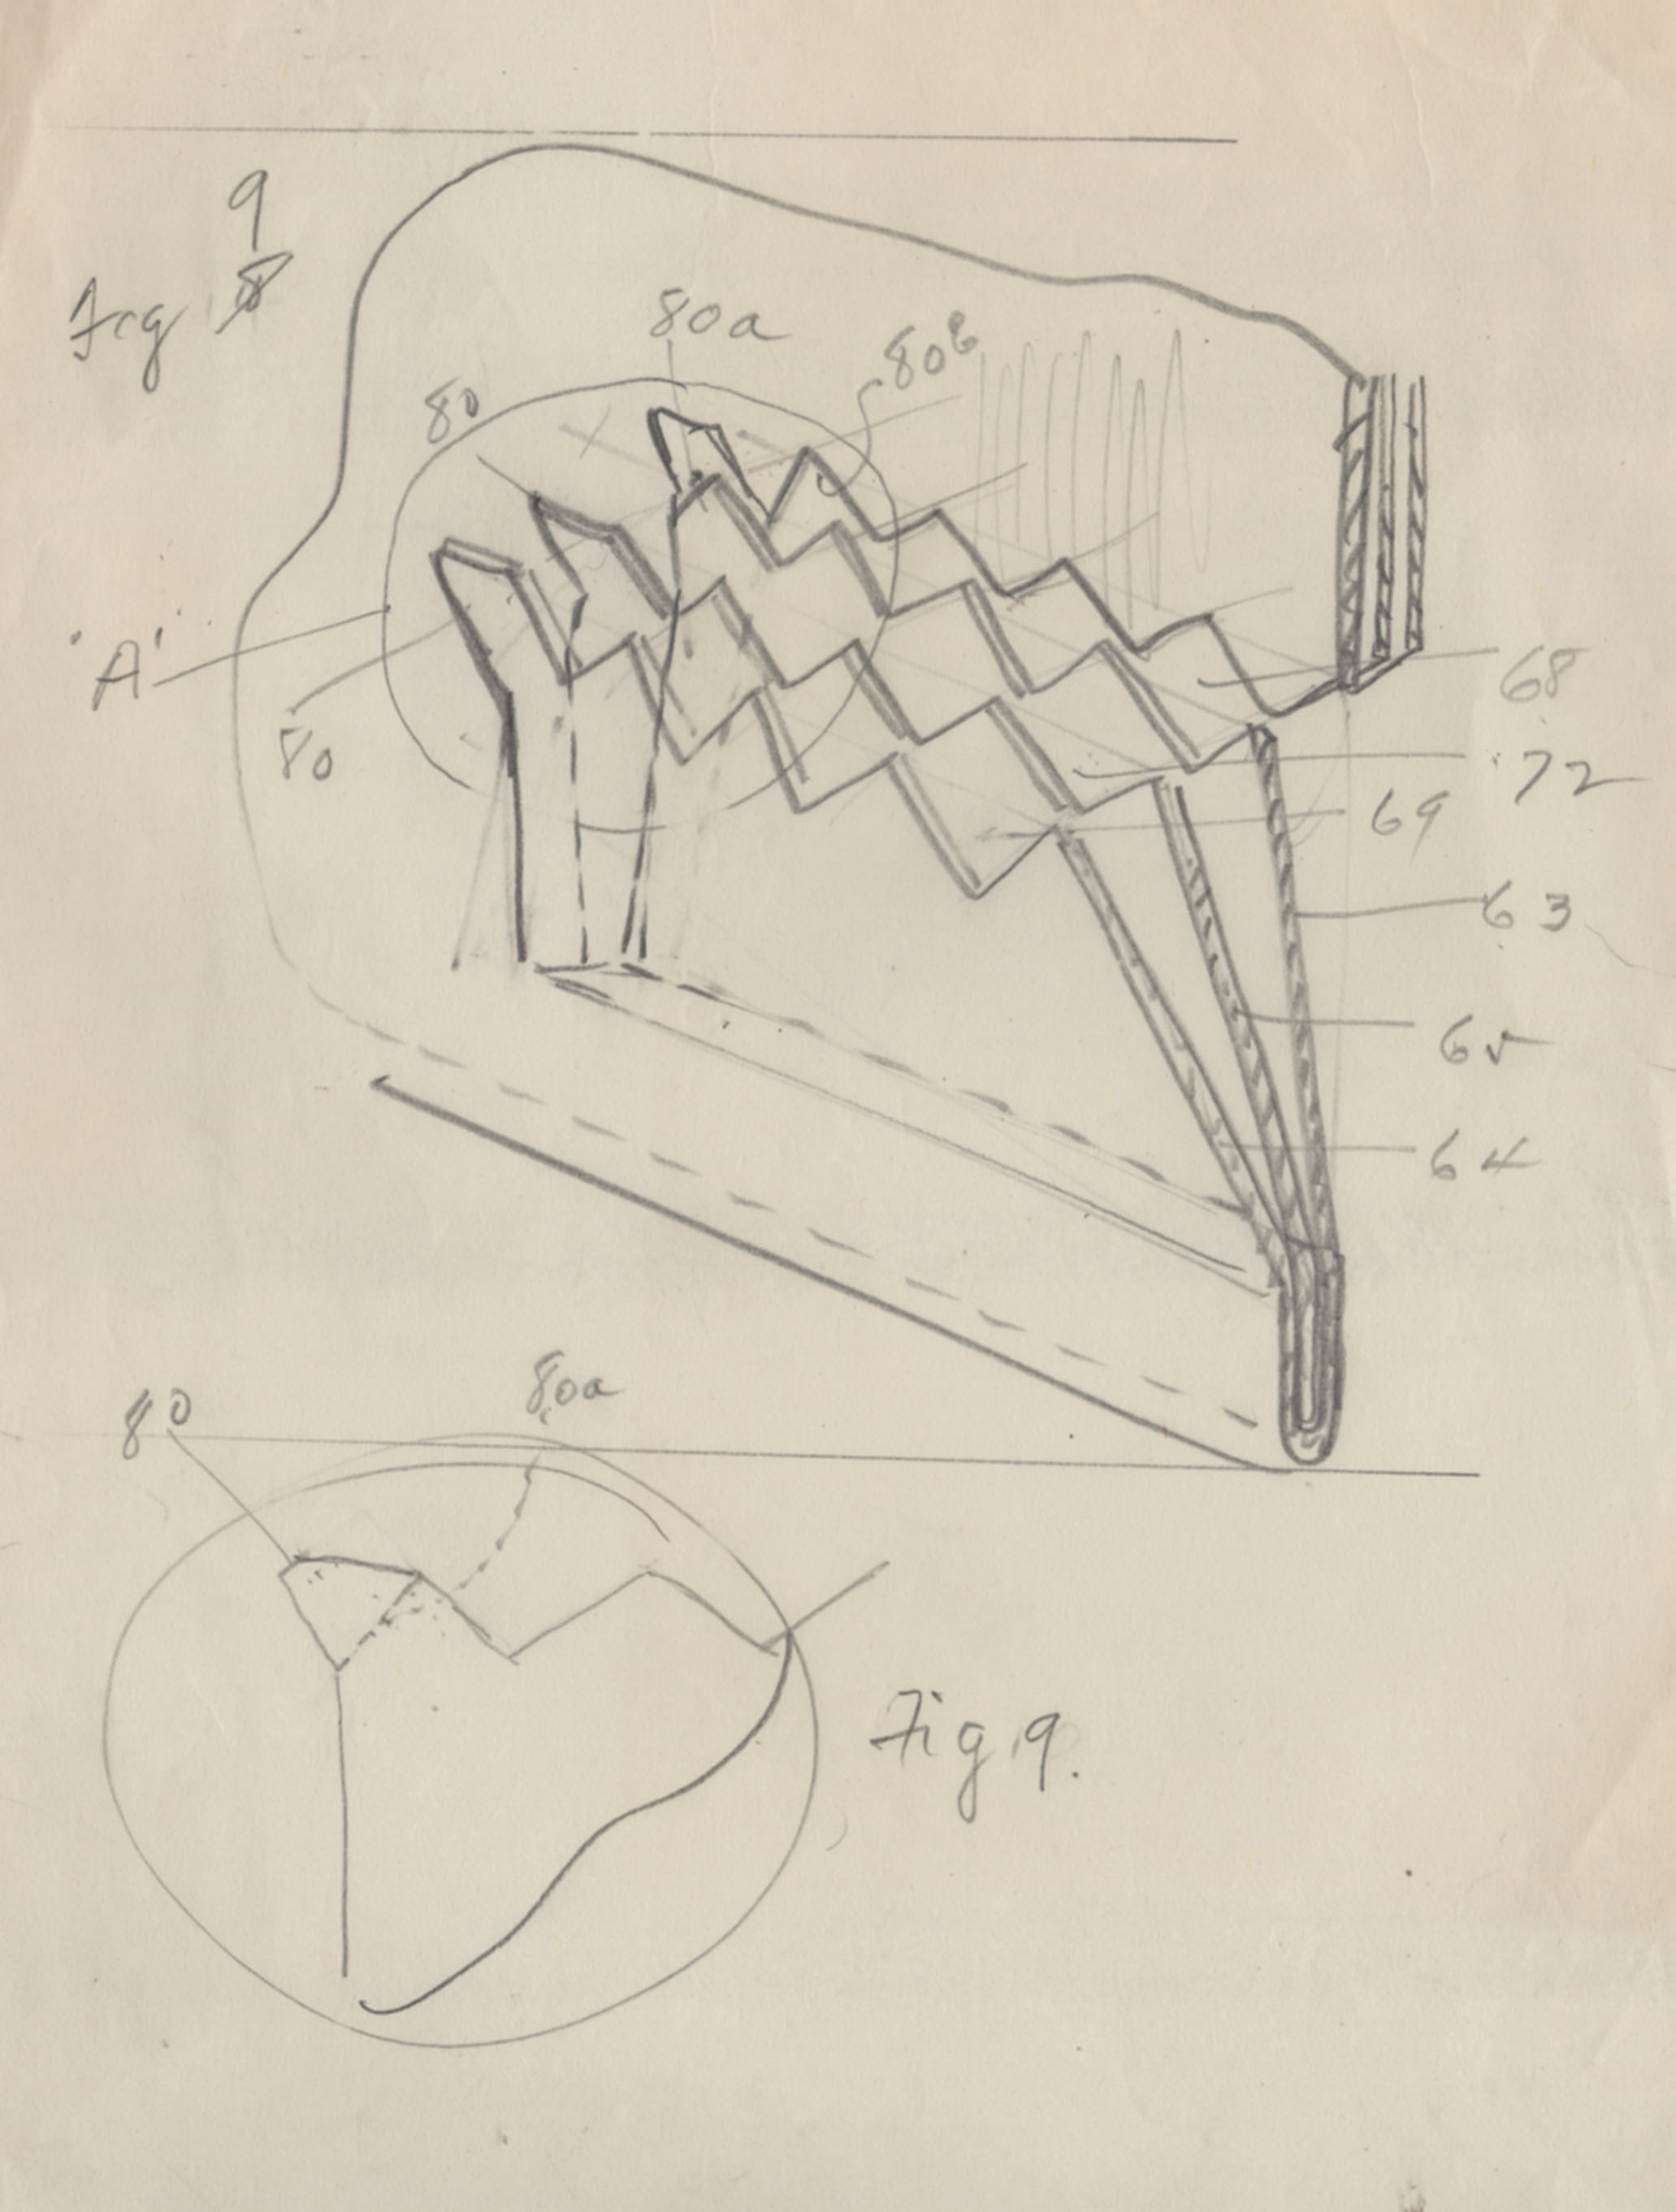 Sketch of cup holder invention.